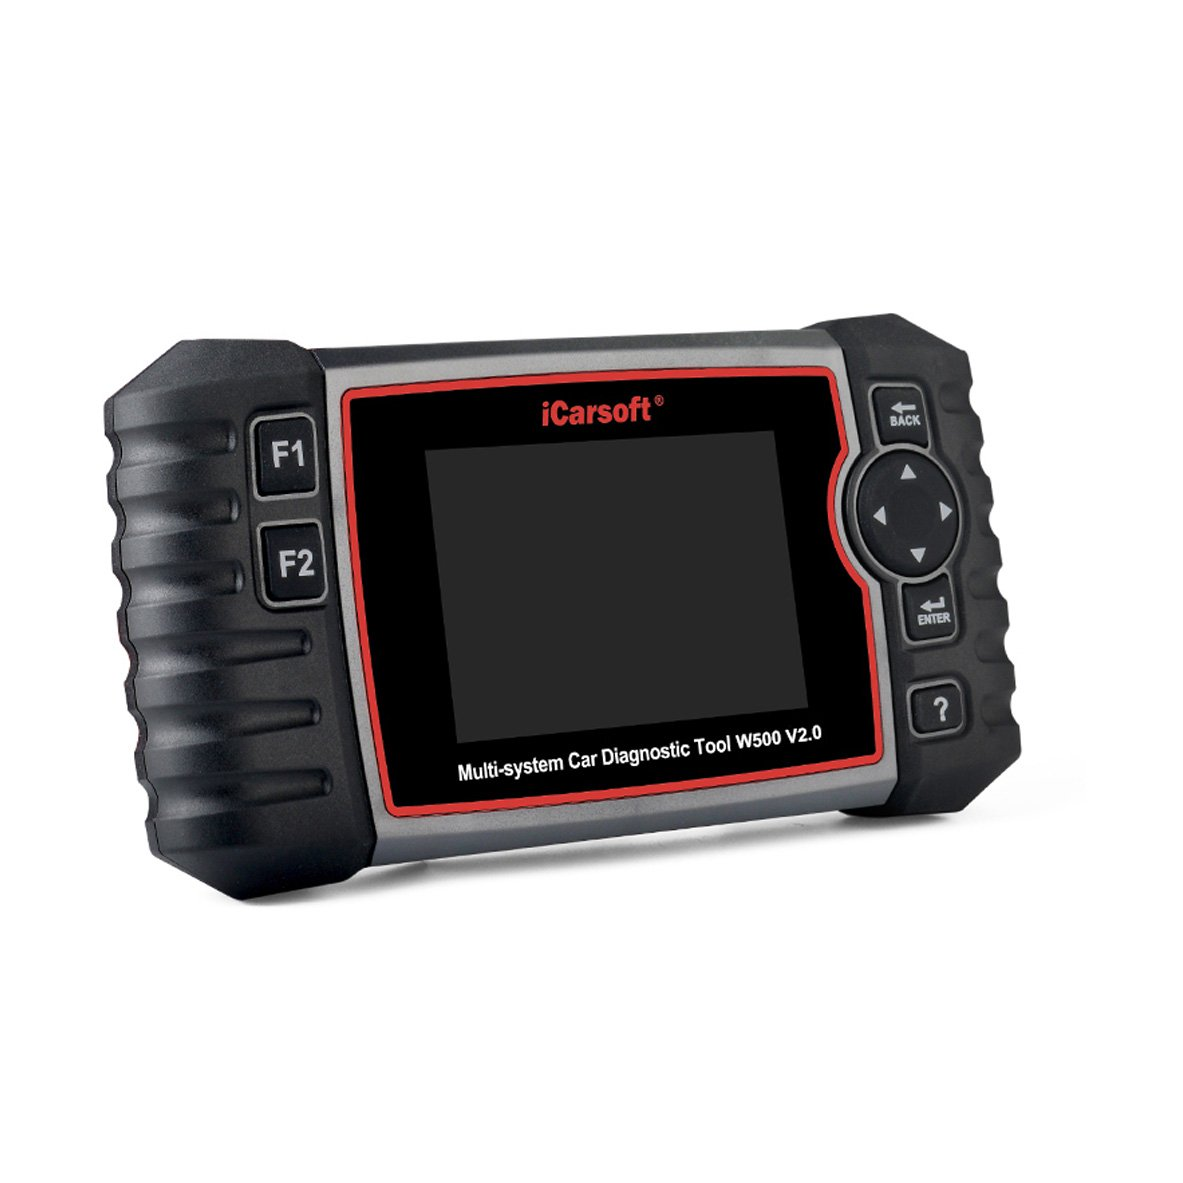 iCarsoft Auto Diagnostic Scanner W500 V2.0 for Audi/VW/Seat/Skoda with ABS Scan,Oil Service Reset ect